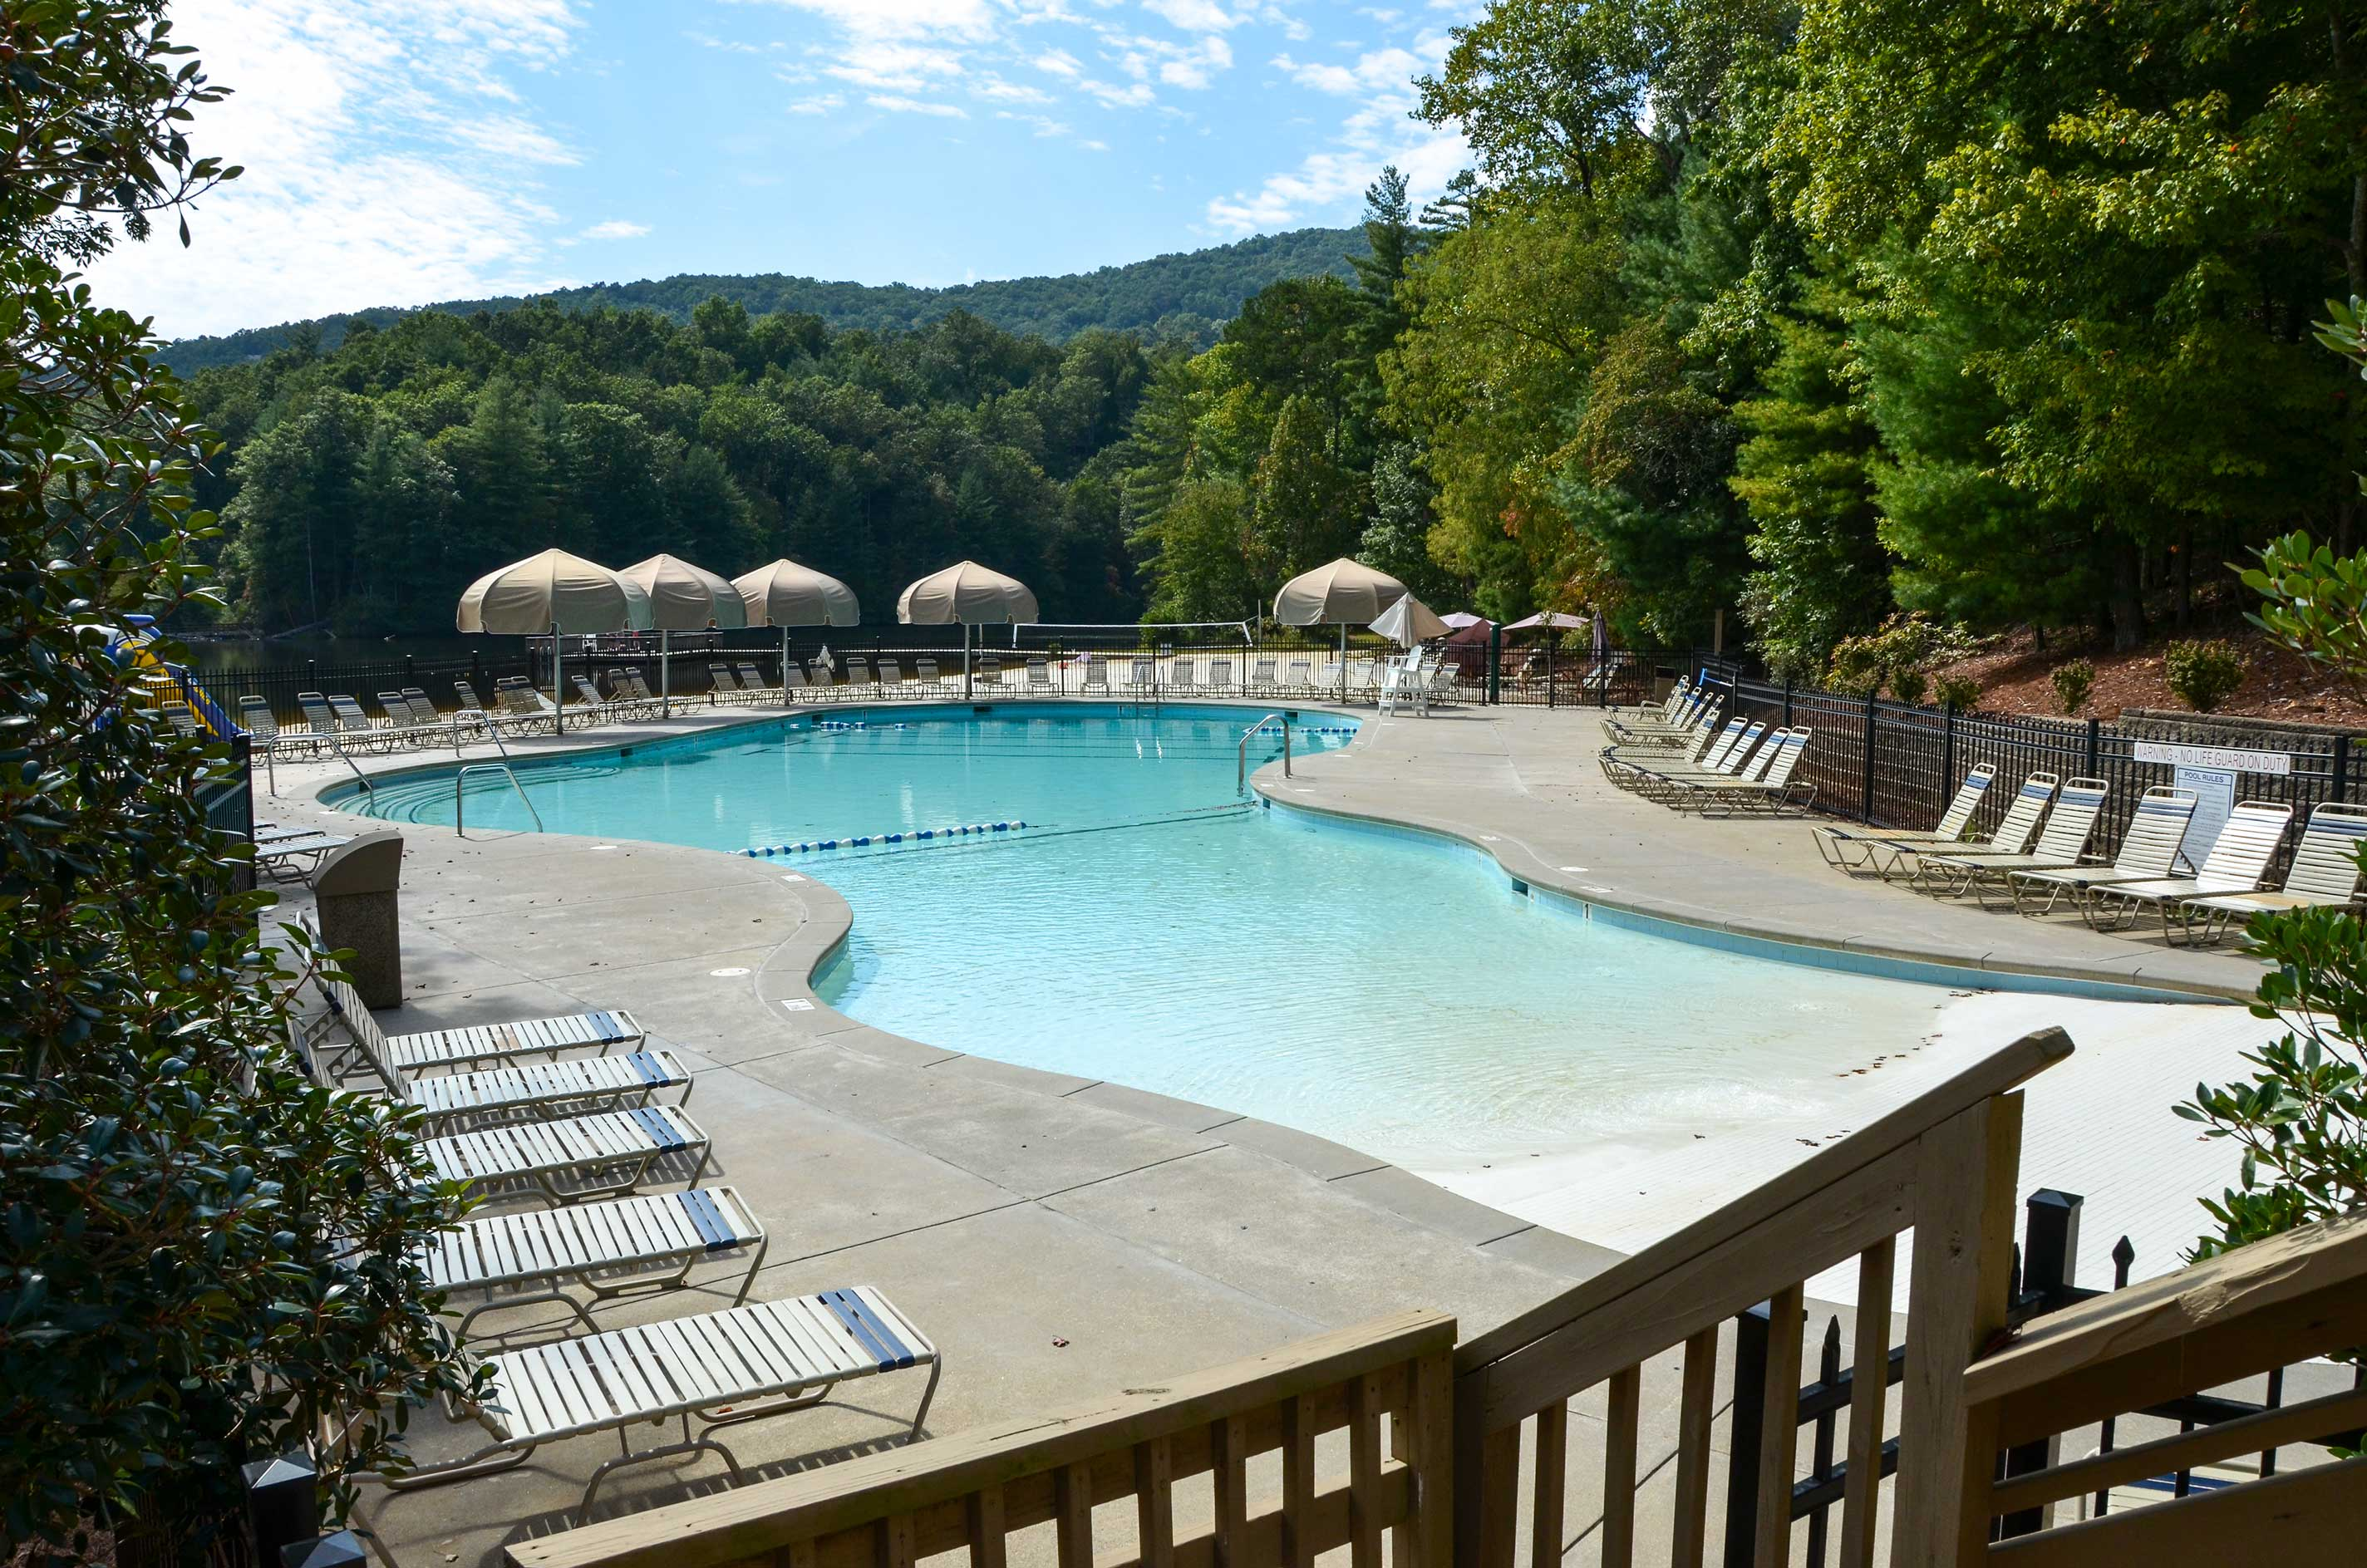 In the summer, perfect your tan next to the large outdoor pool.